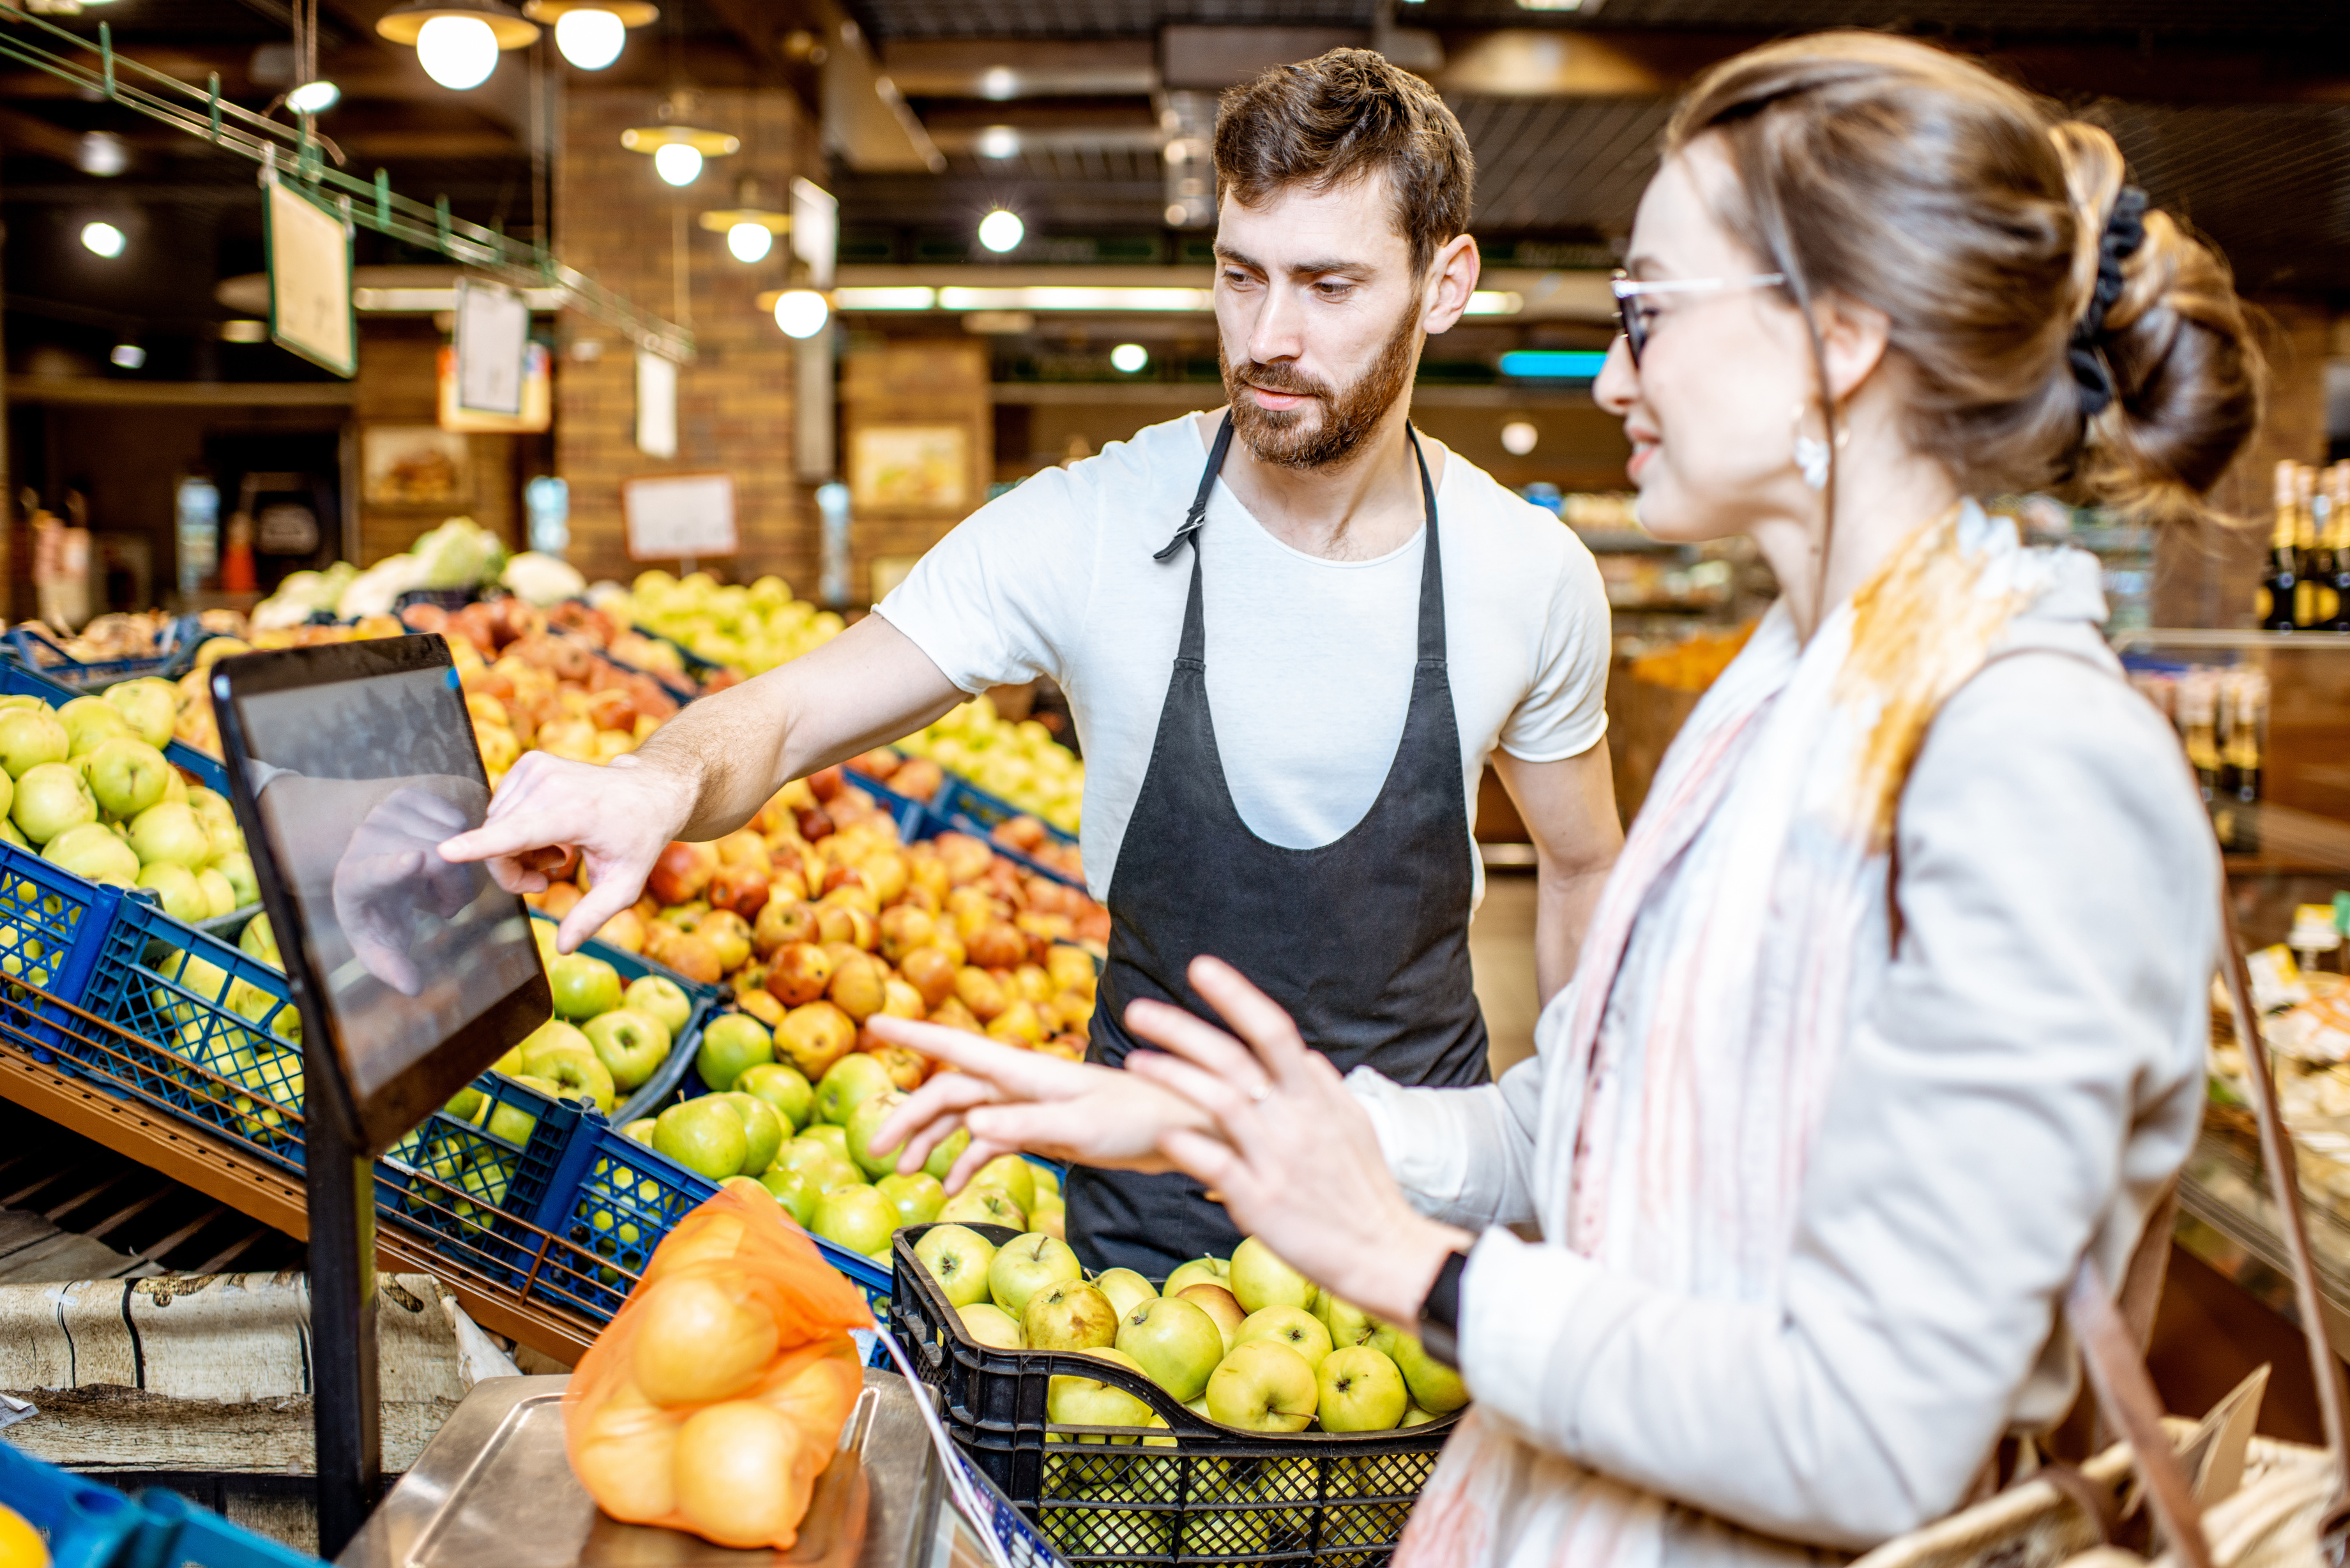 Sorry UK Grocers, your customer-centric strategy is outdated